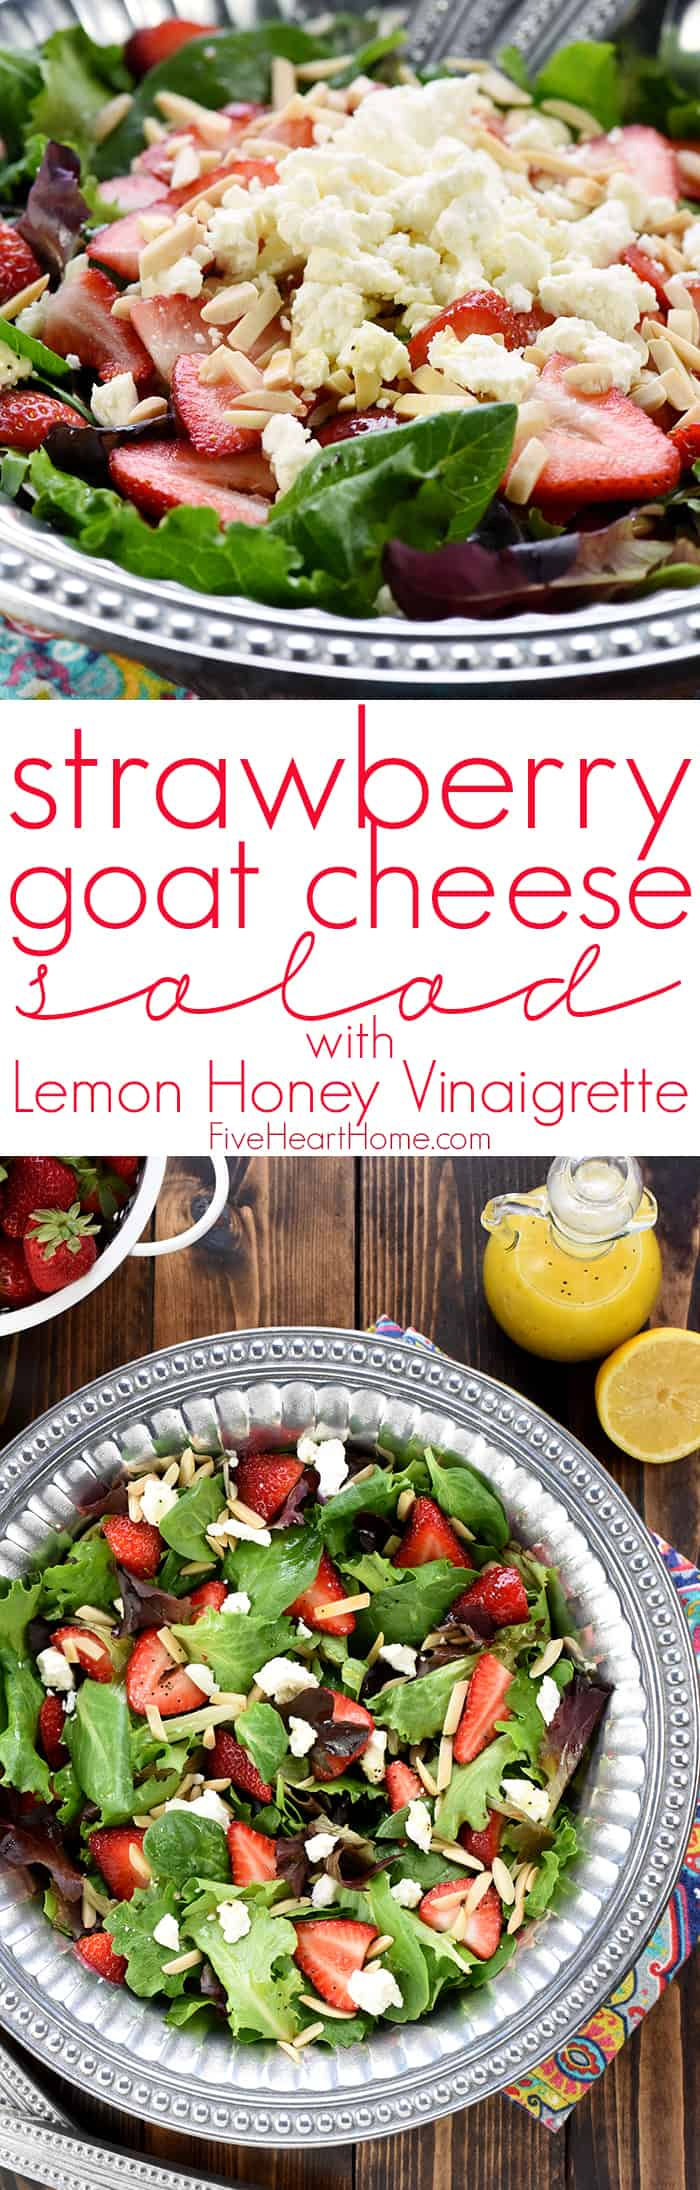 Strawberry Goat Cheese Salad with Toasted Almonds & Lemon Honey Vinaigrette ~ loaded with vibrant colors, delicious flavors, and contrasting textures for a lovely addition to your spring or summer table! | FiveHeartHome.com